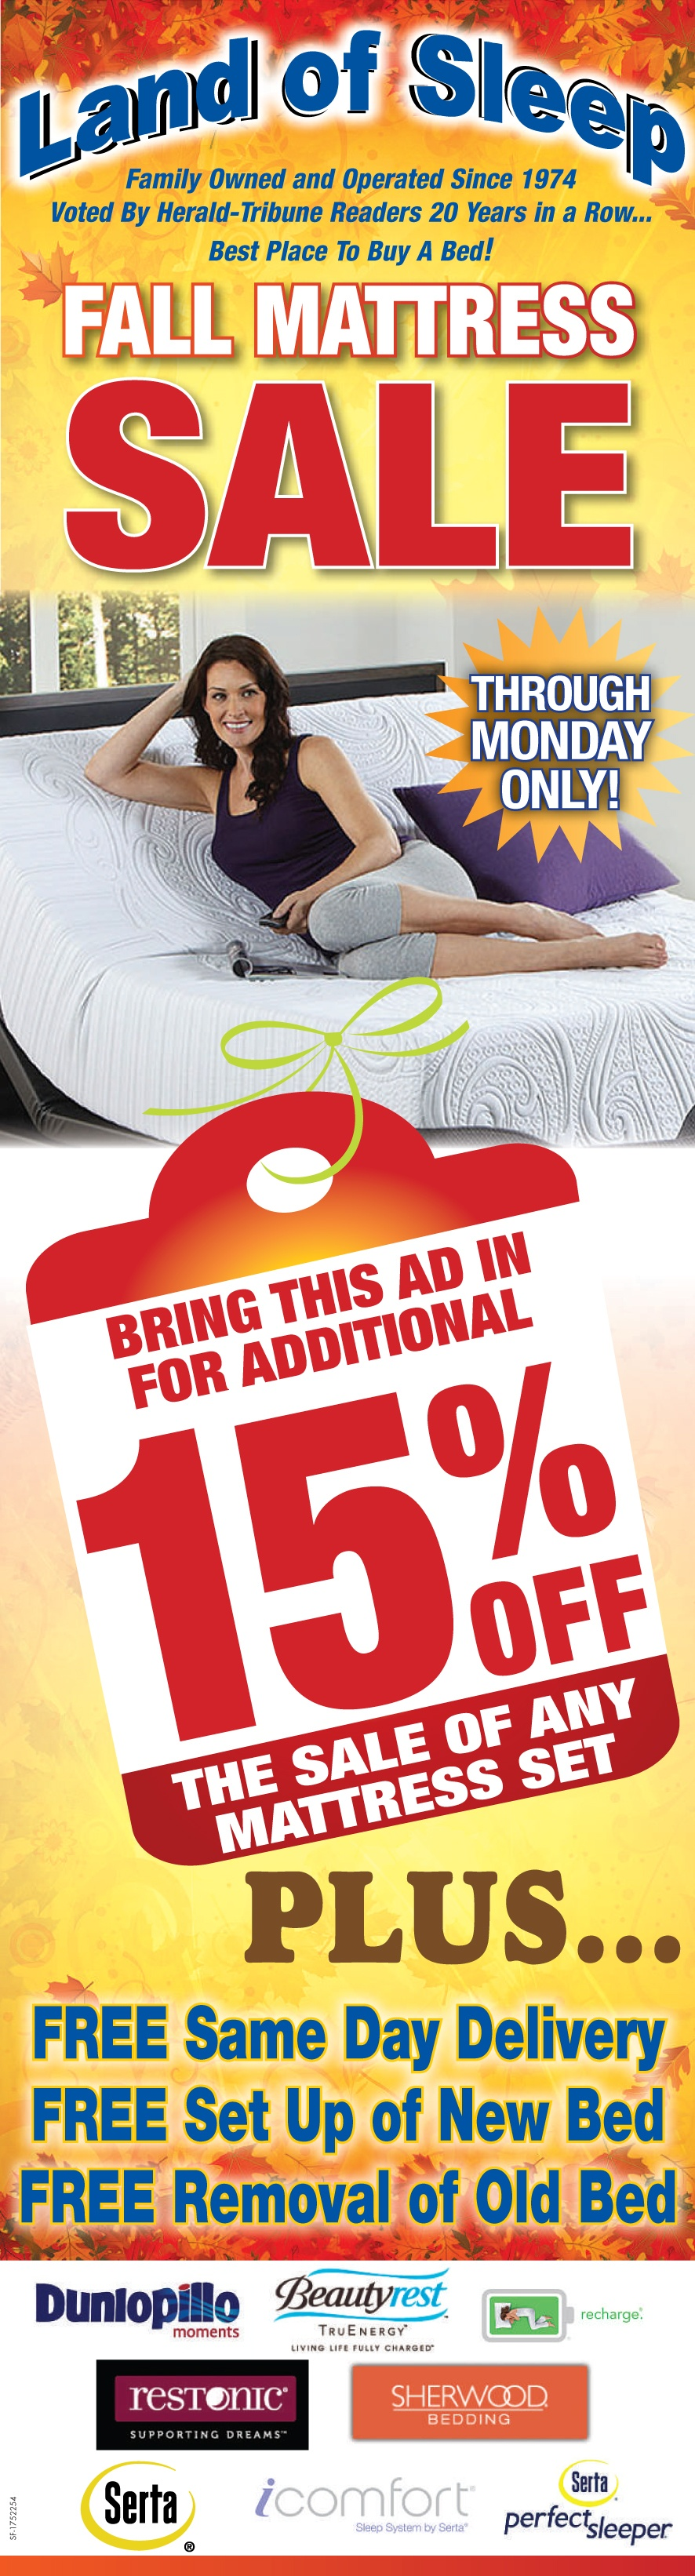 Check Out Our Fall Mattress Sale!